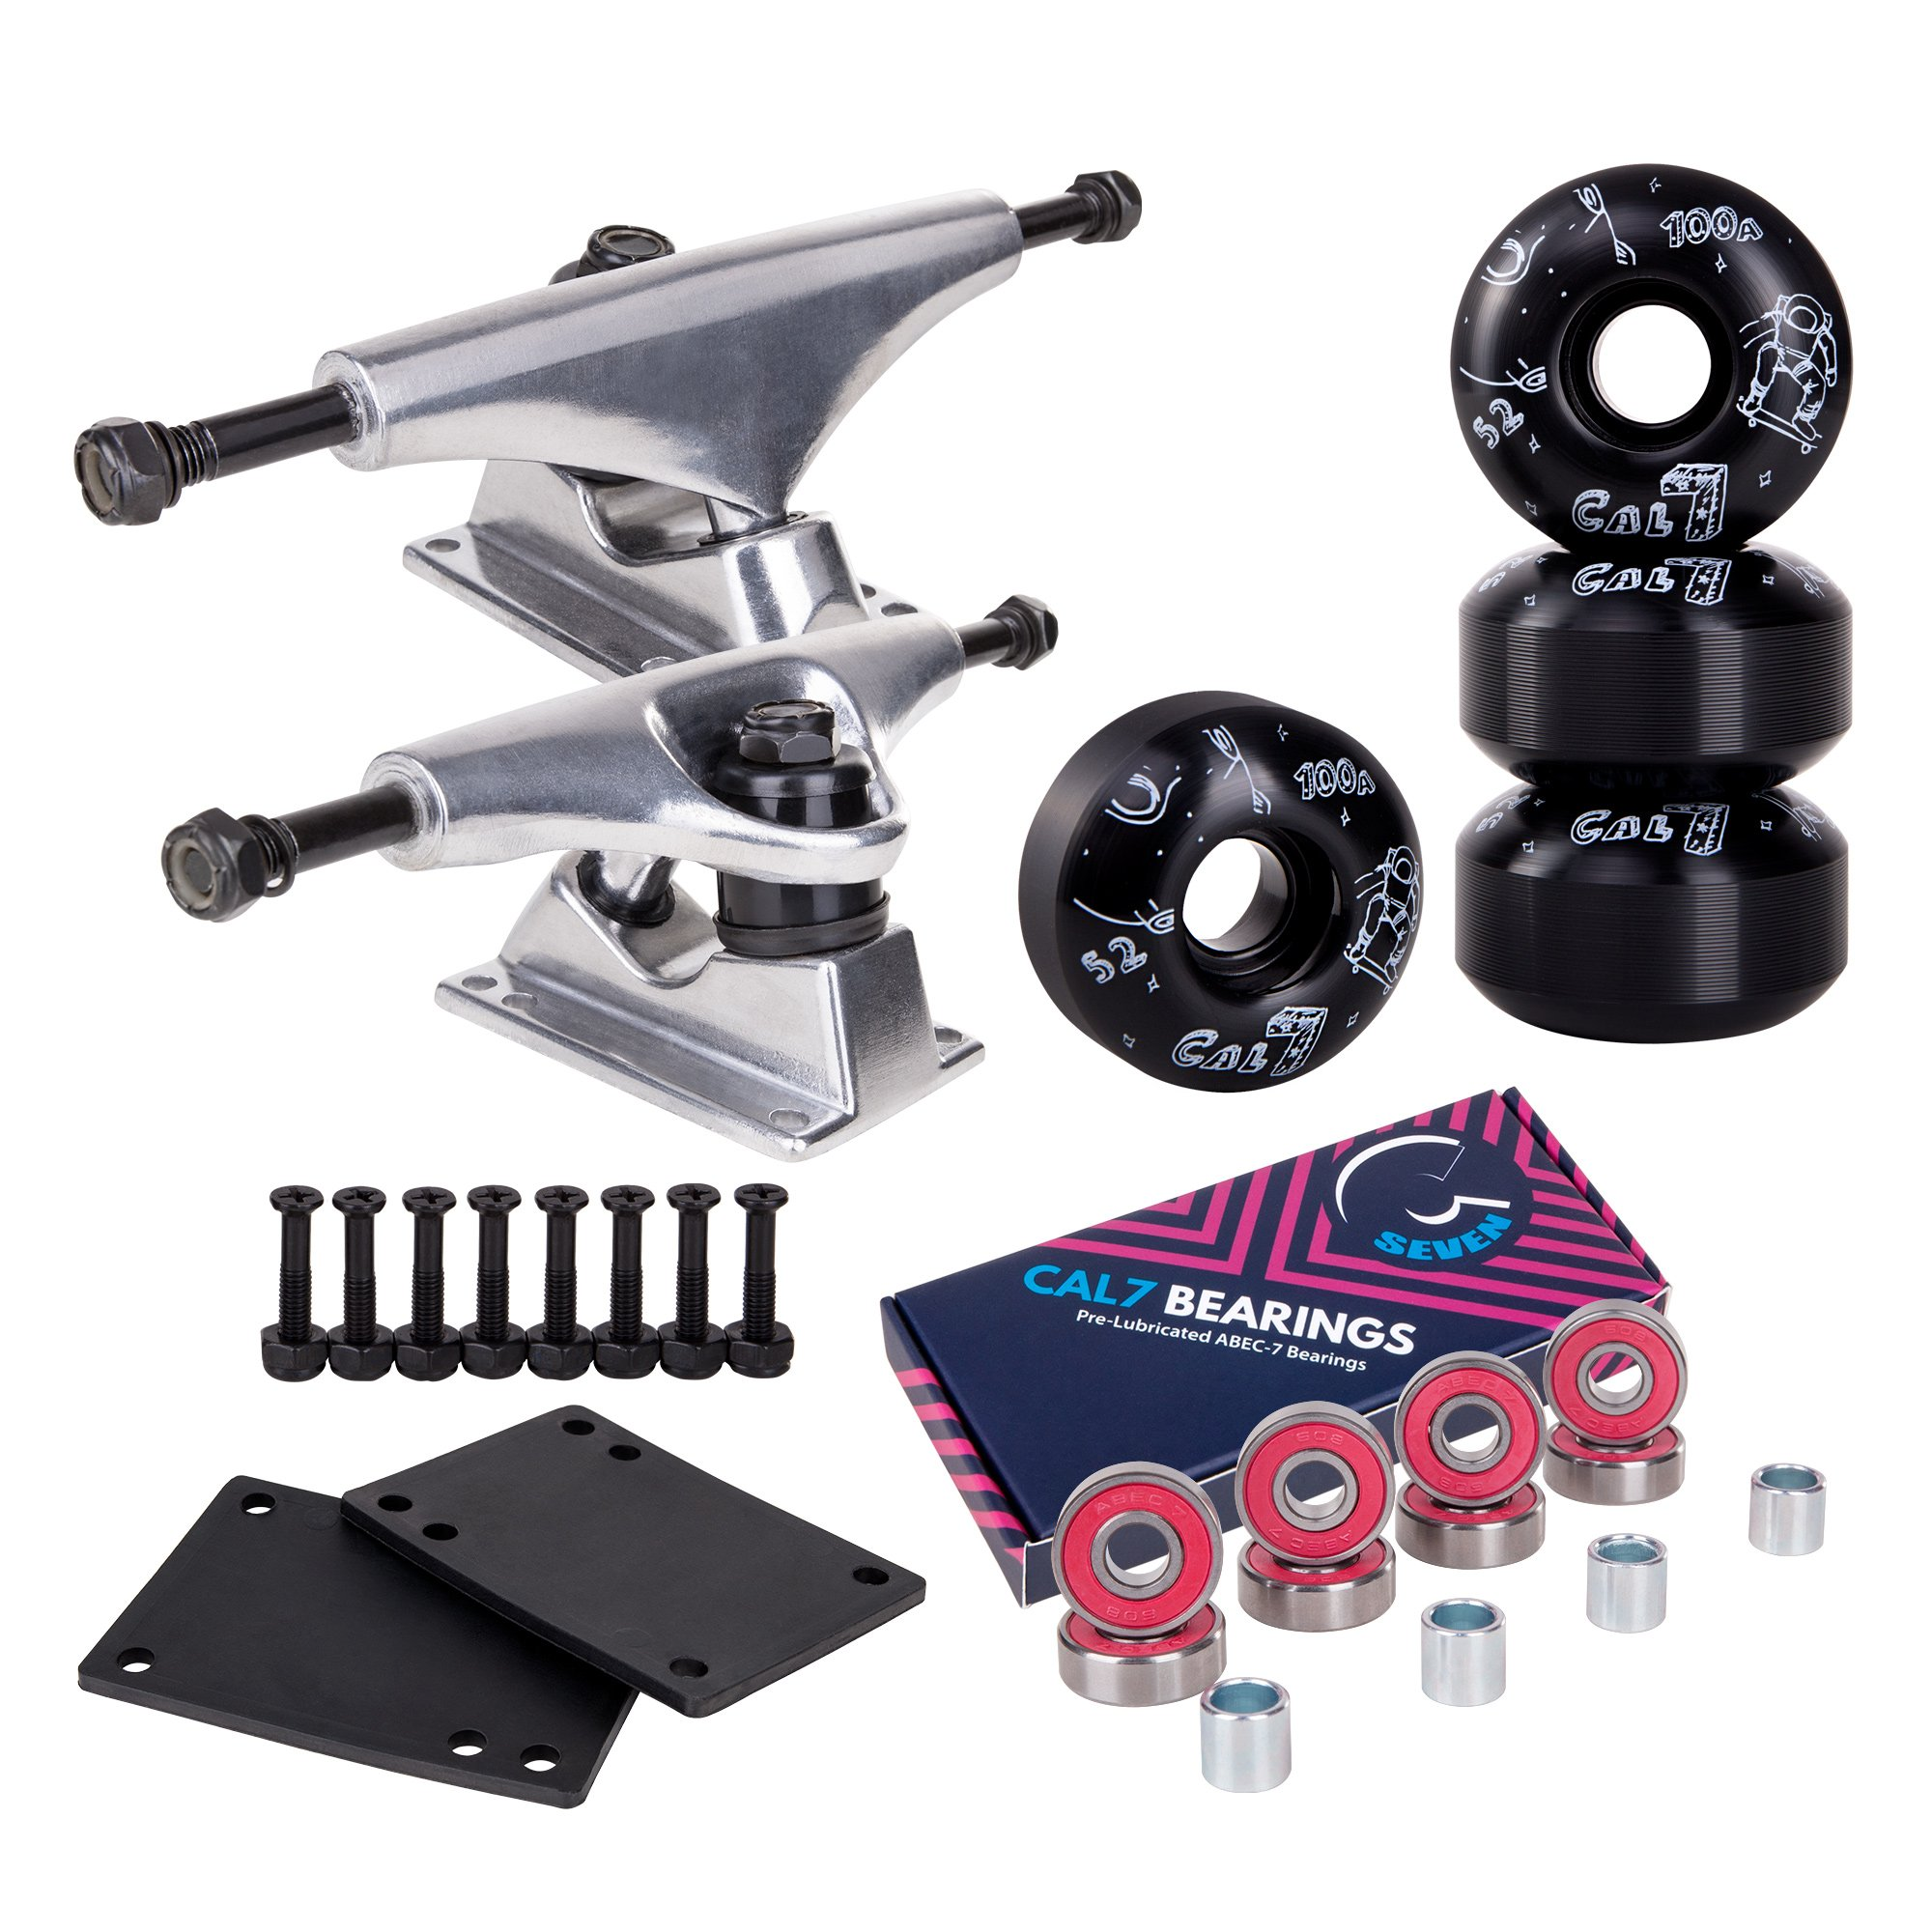 Cal 7 Skateboard Package Combo with 5 Inch / 129 Millimeter Trucks, 52mm 99A Wheels, Complete Set of Bearings and Steel Hardware (Silver Truck + Black Interstellar Wheels) by Cal 7